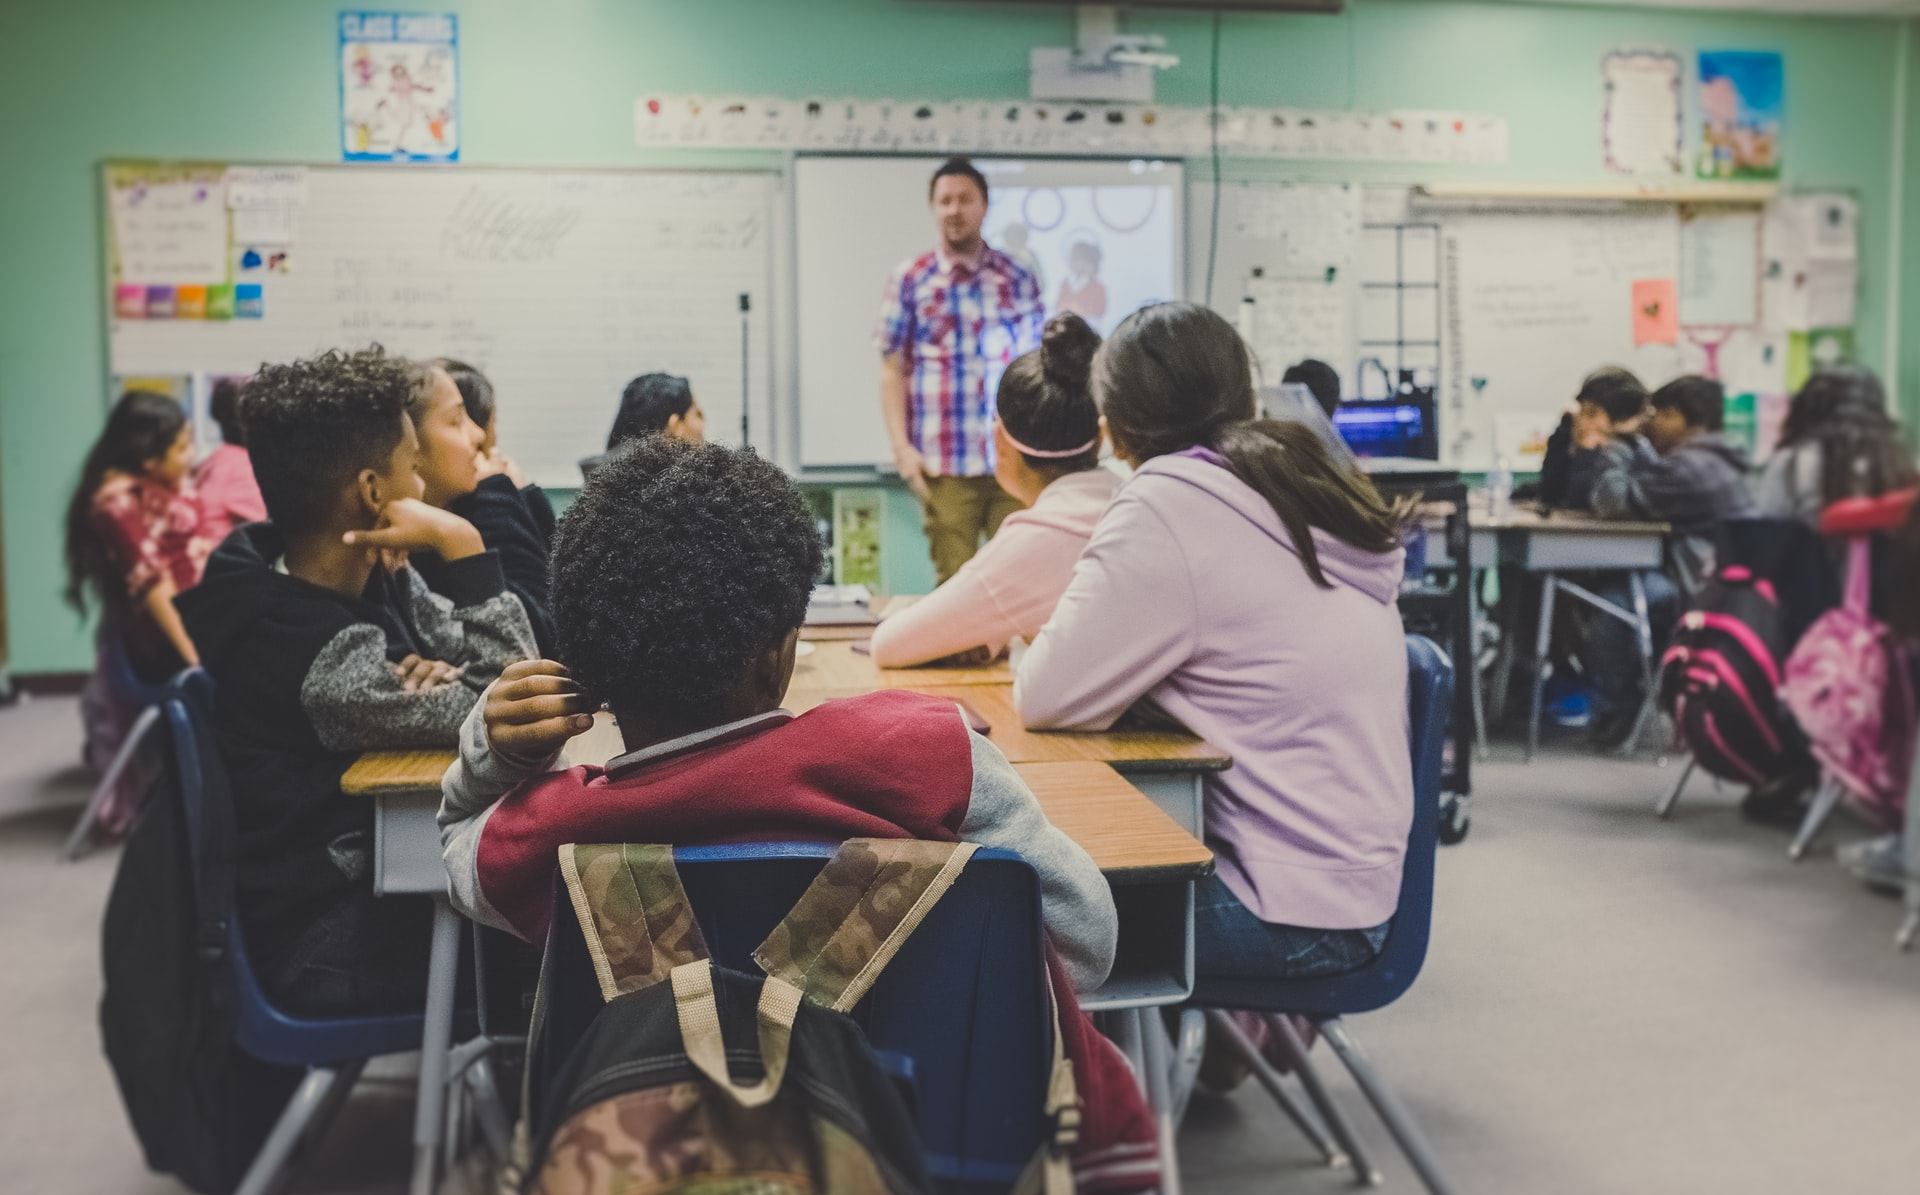 A man teaches teenagers in a classroom.